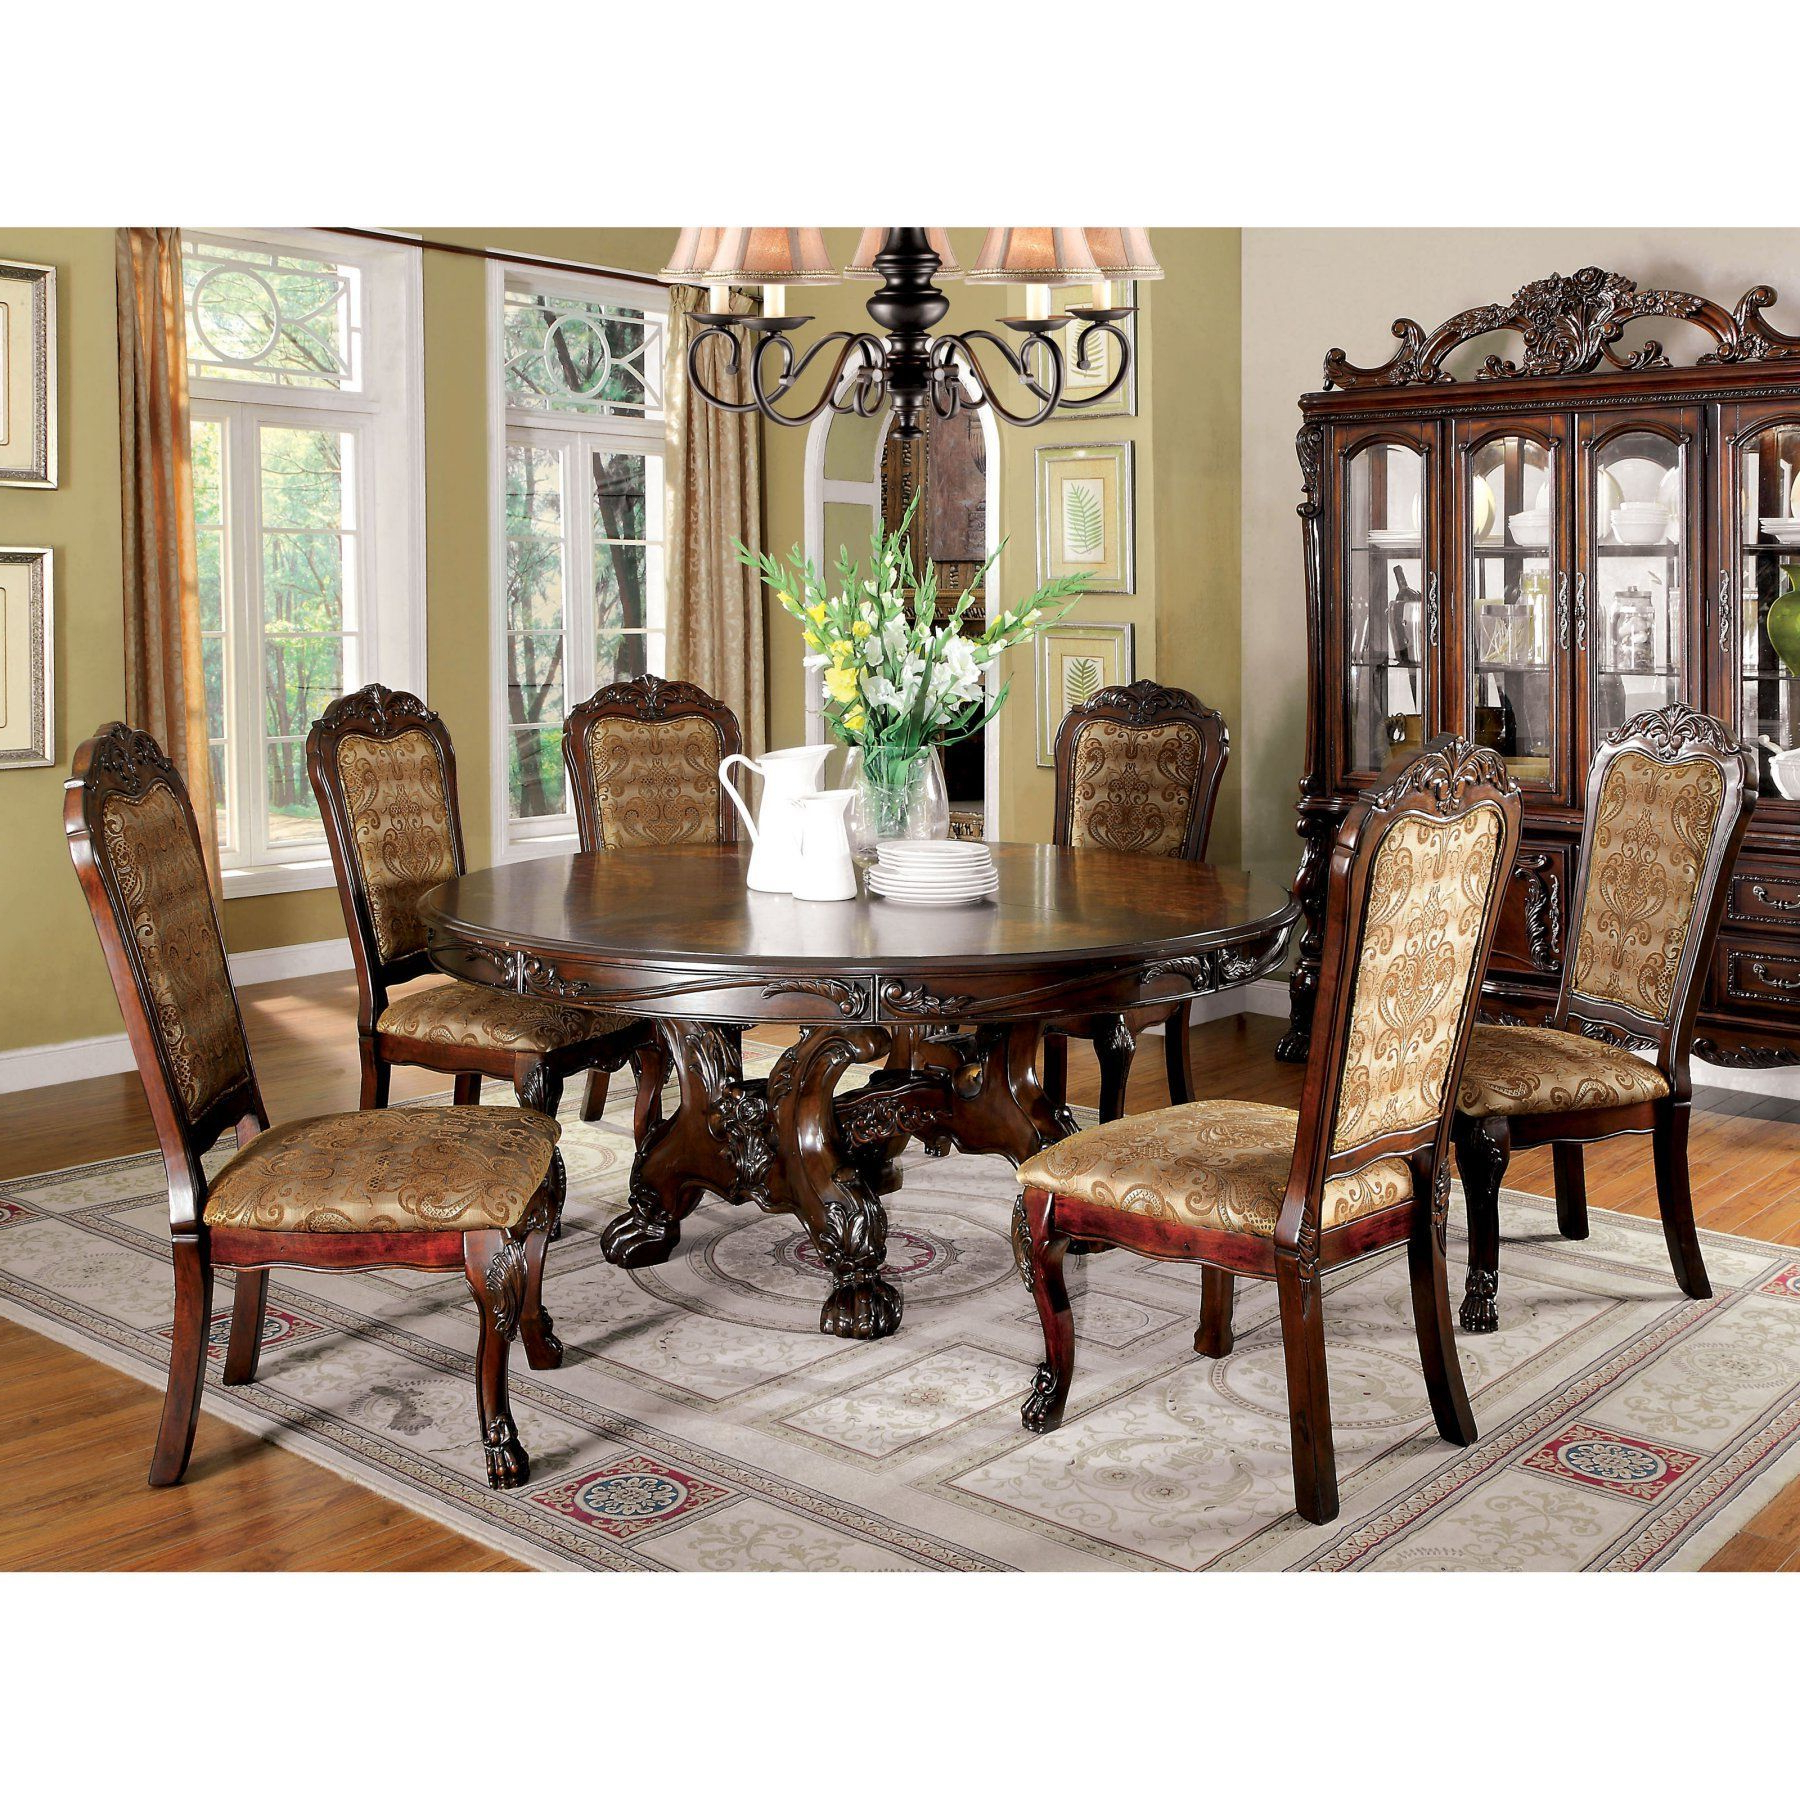 Furniture Of America Evangeline Elegant 7 Piece Round Dining Intended For Newest Elegance Large Round Dining Tables (Gallery 16 of 30)